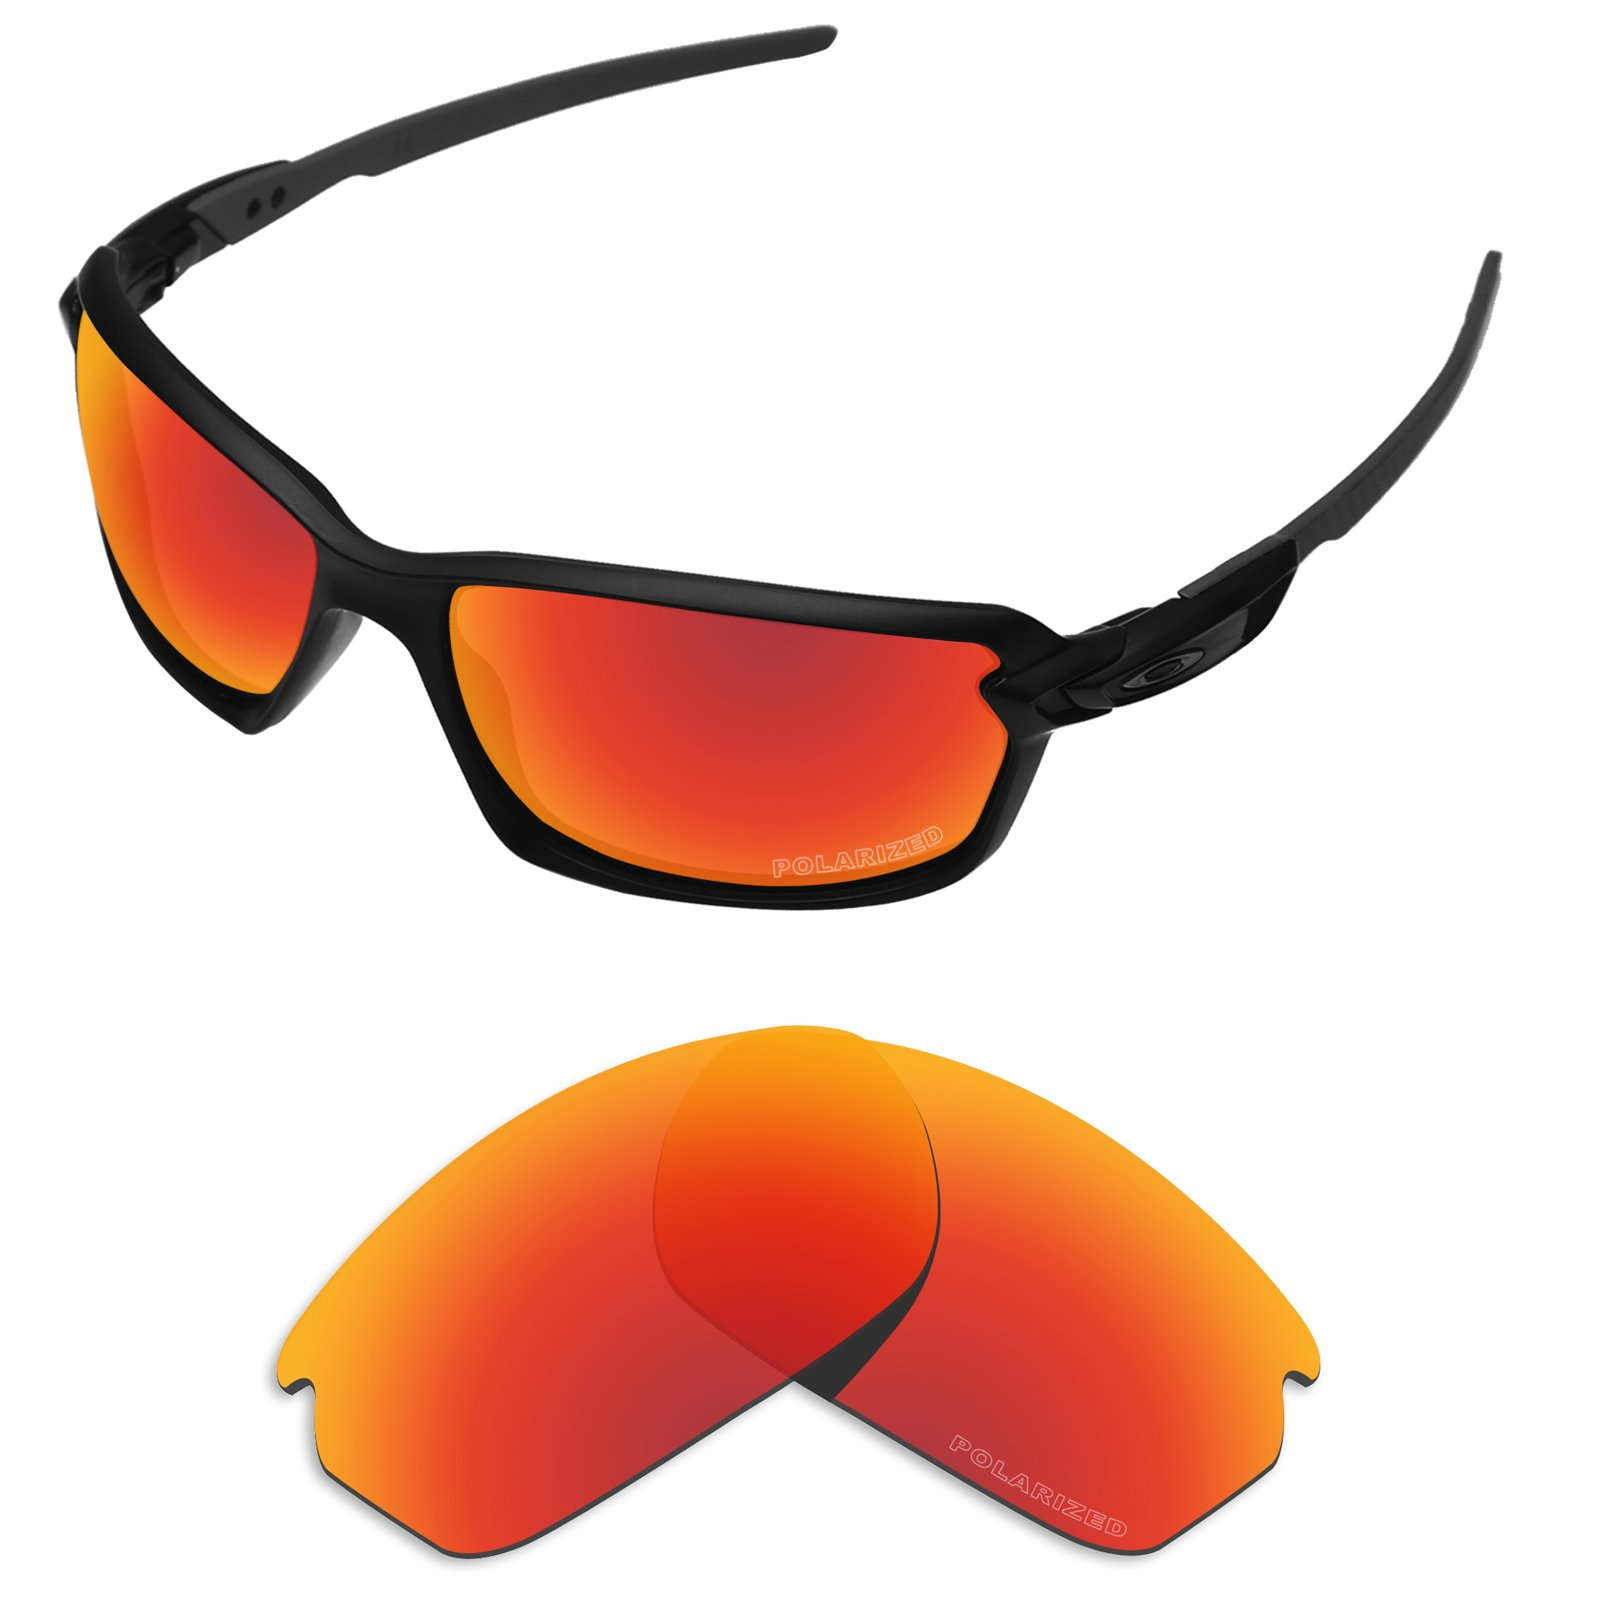 Tintart Performance Replacement Lenses for Oakley Carbon Shift Sunglass Polarized Etched-Fire Red by Tintart